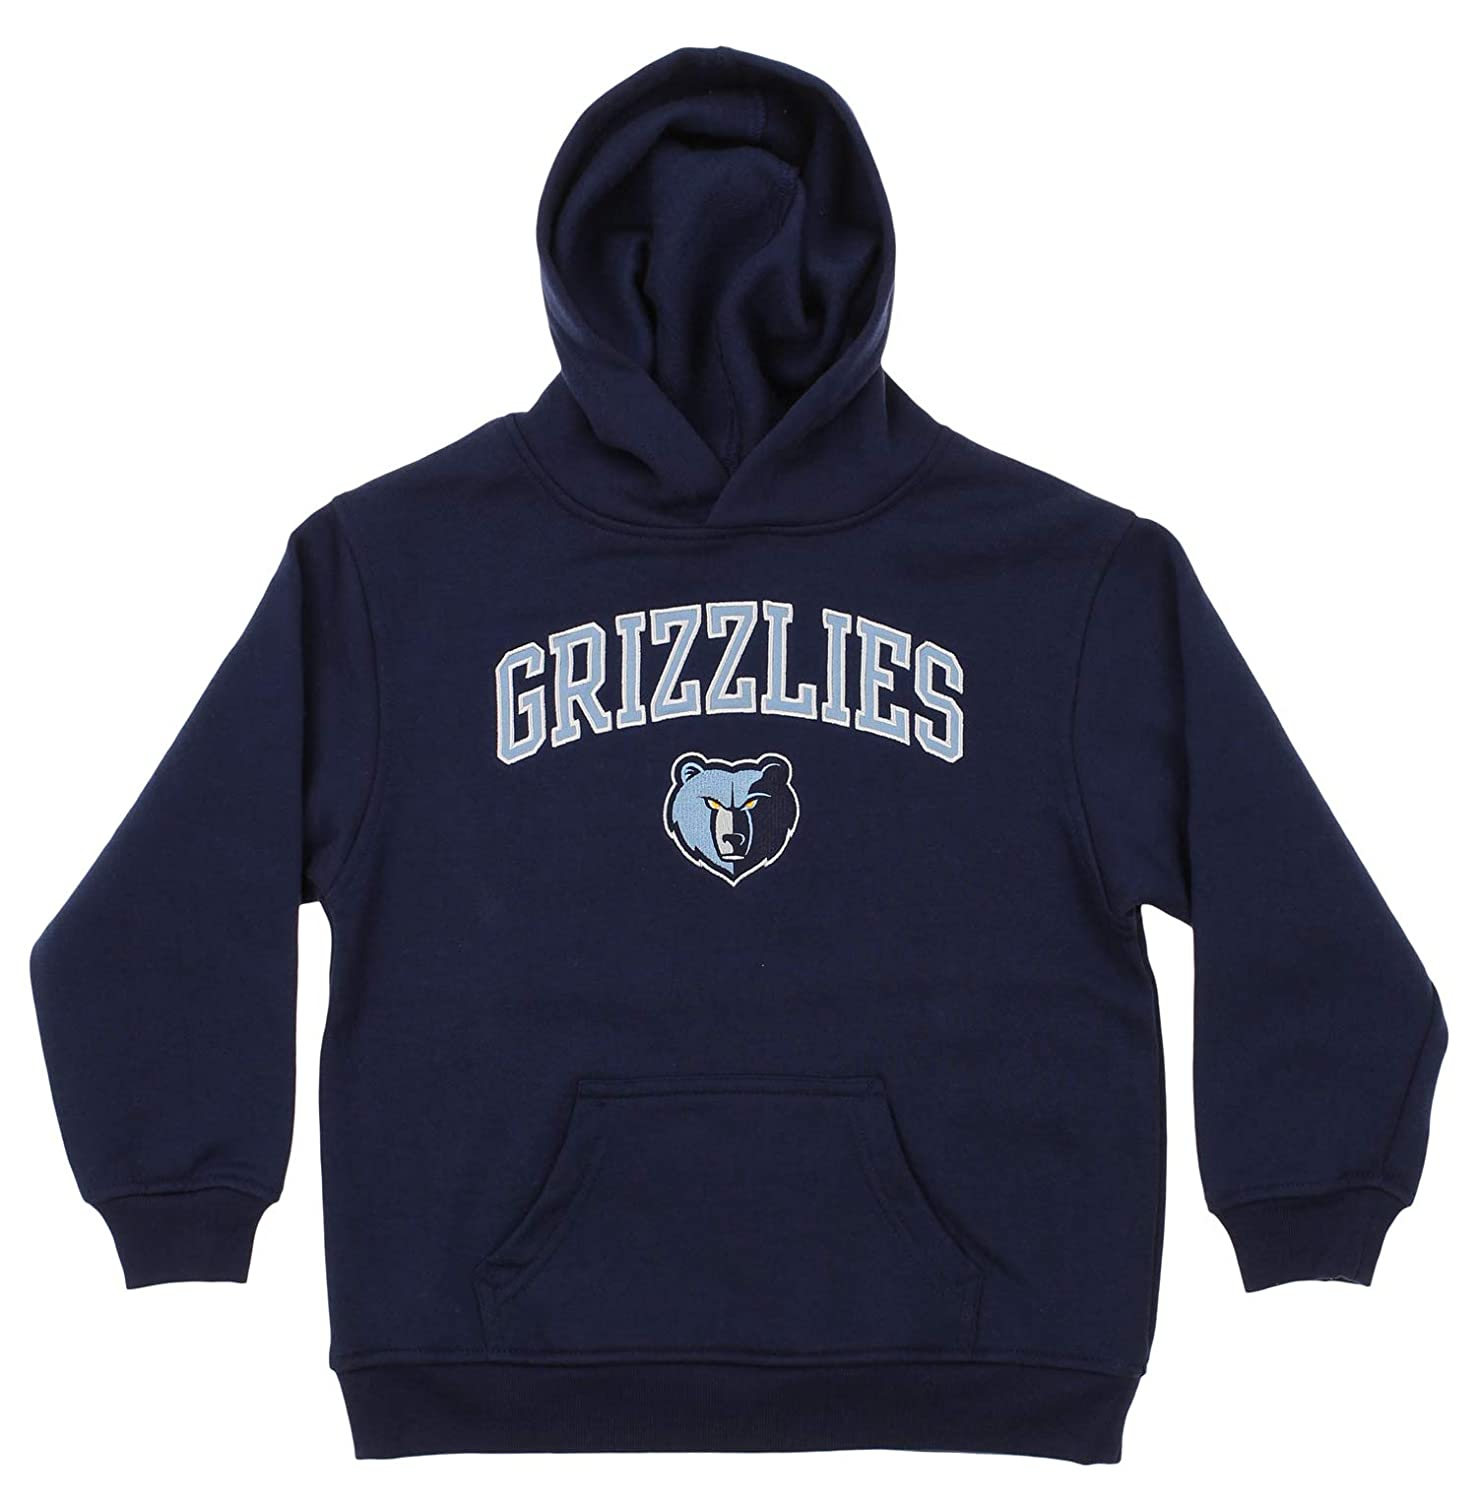 Outerstuff NBA Youth's Fleece Pullover Hoodie, Team Variation